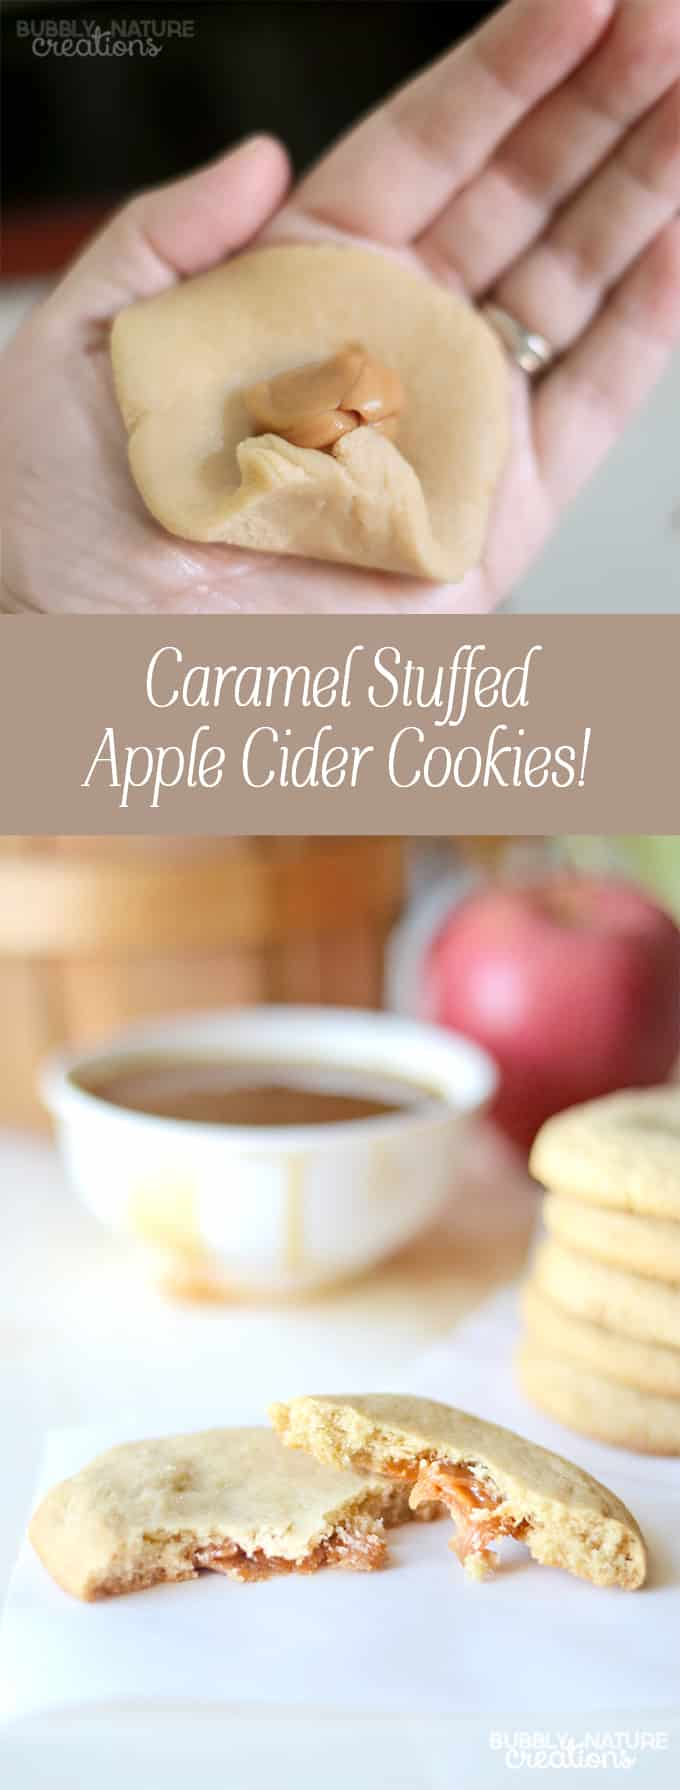 Caramel Stuffed Apple Cider Cookies! These bake up amazing and the first bite of caramel will have you hooked! Perfect for anytime you want a taste of fall apples and caramel!